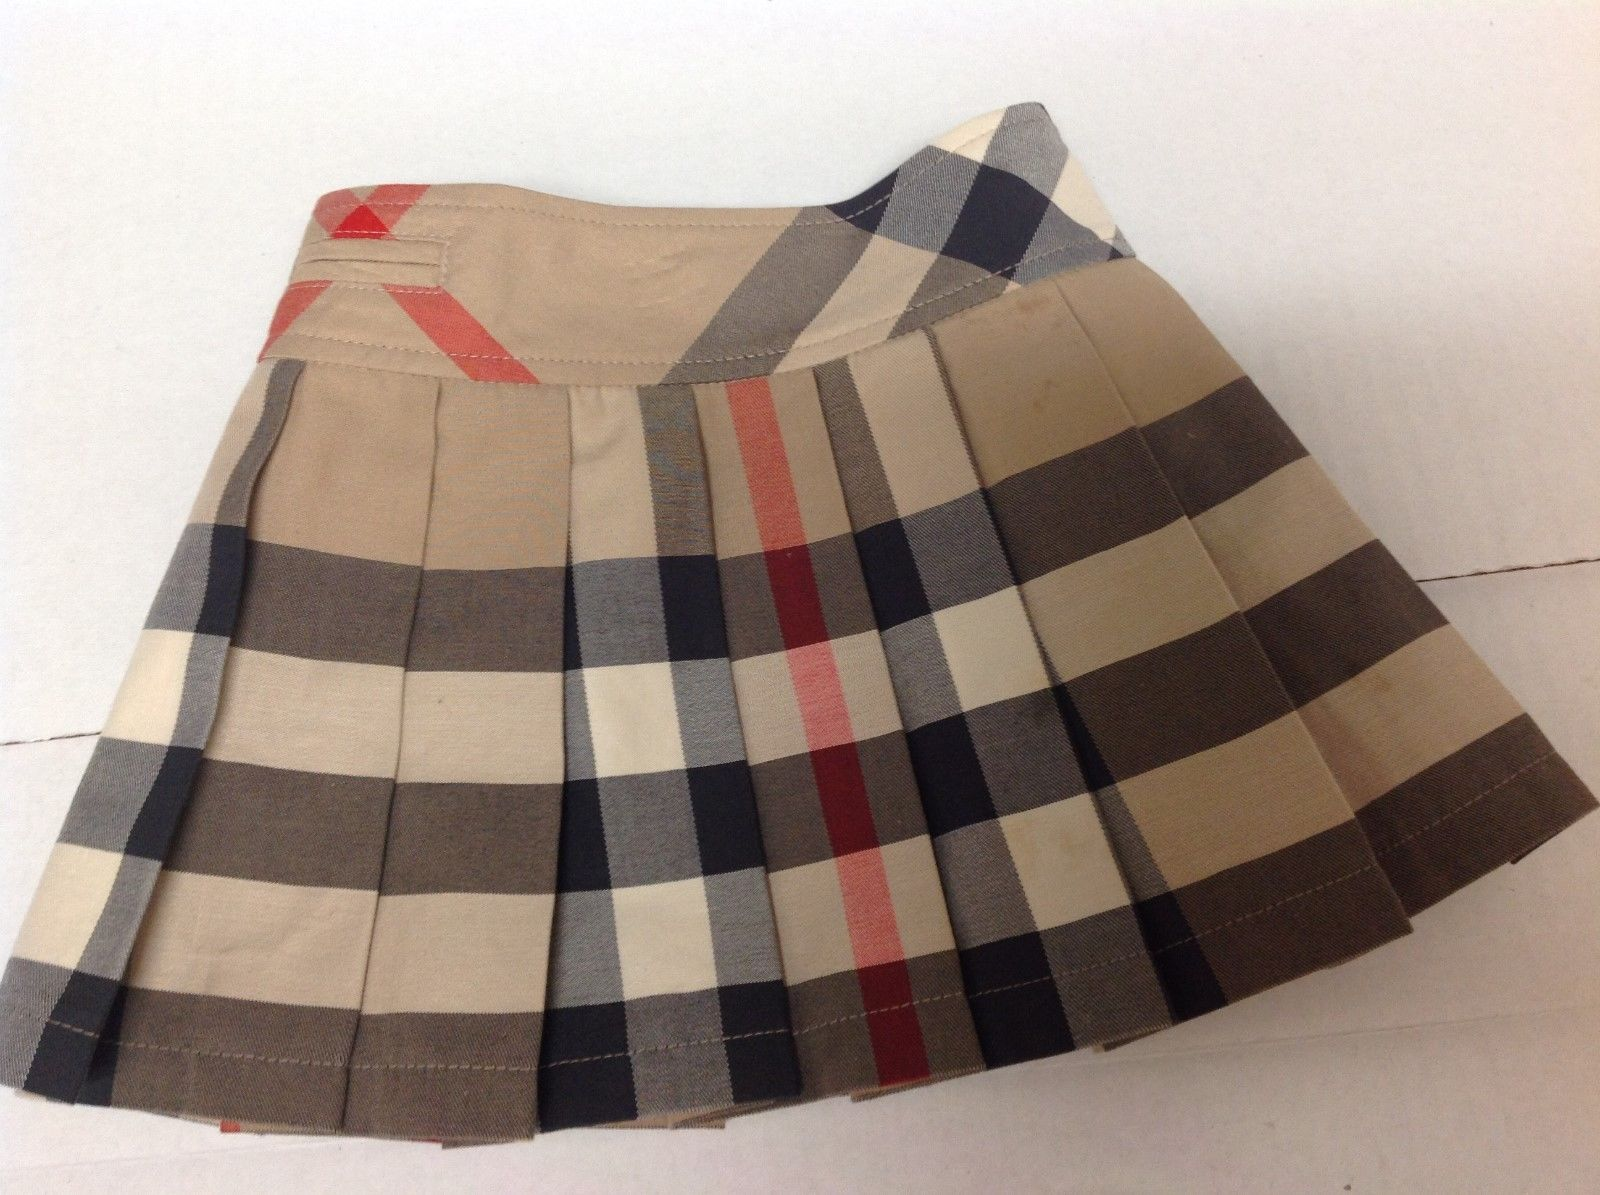 66ca6f0ce4104 Skirts 147214  Burberry Girls Pleated Check Skirt Classic Check (Little  Girls) Size 2Y -  BUY IT NOW ONLY   95 on eBay!